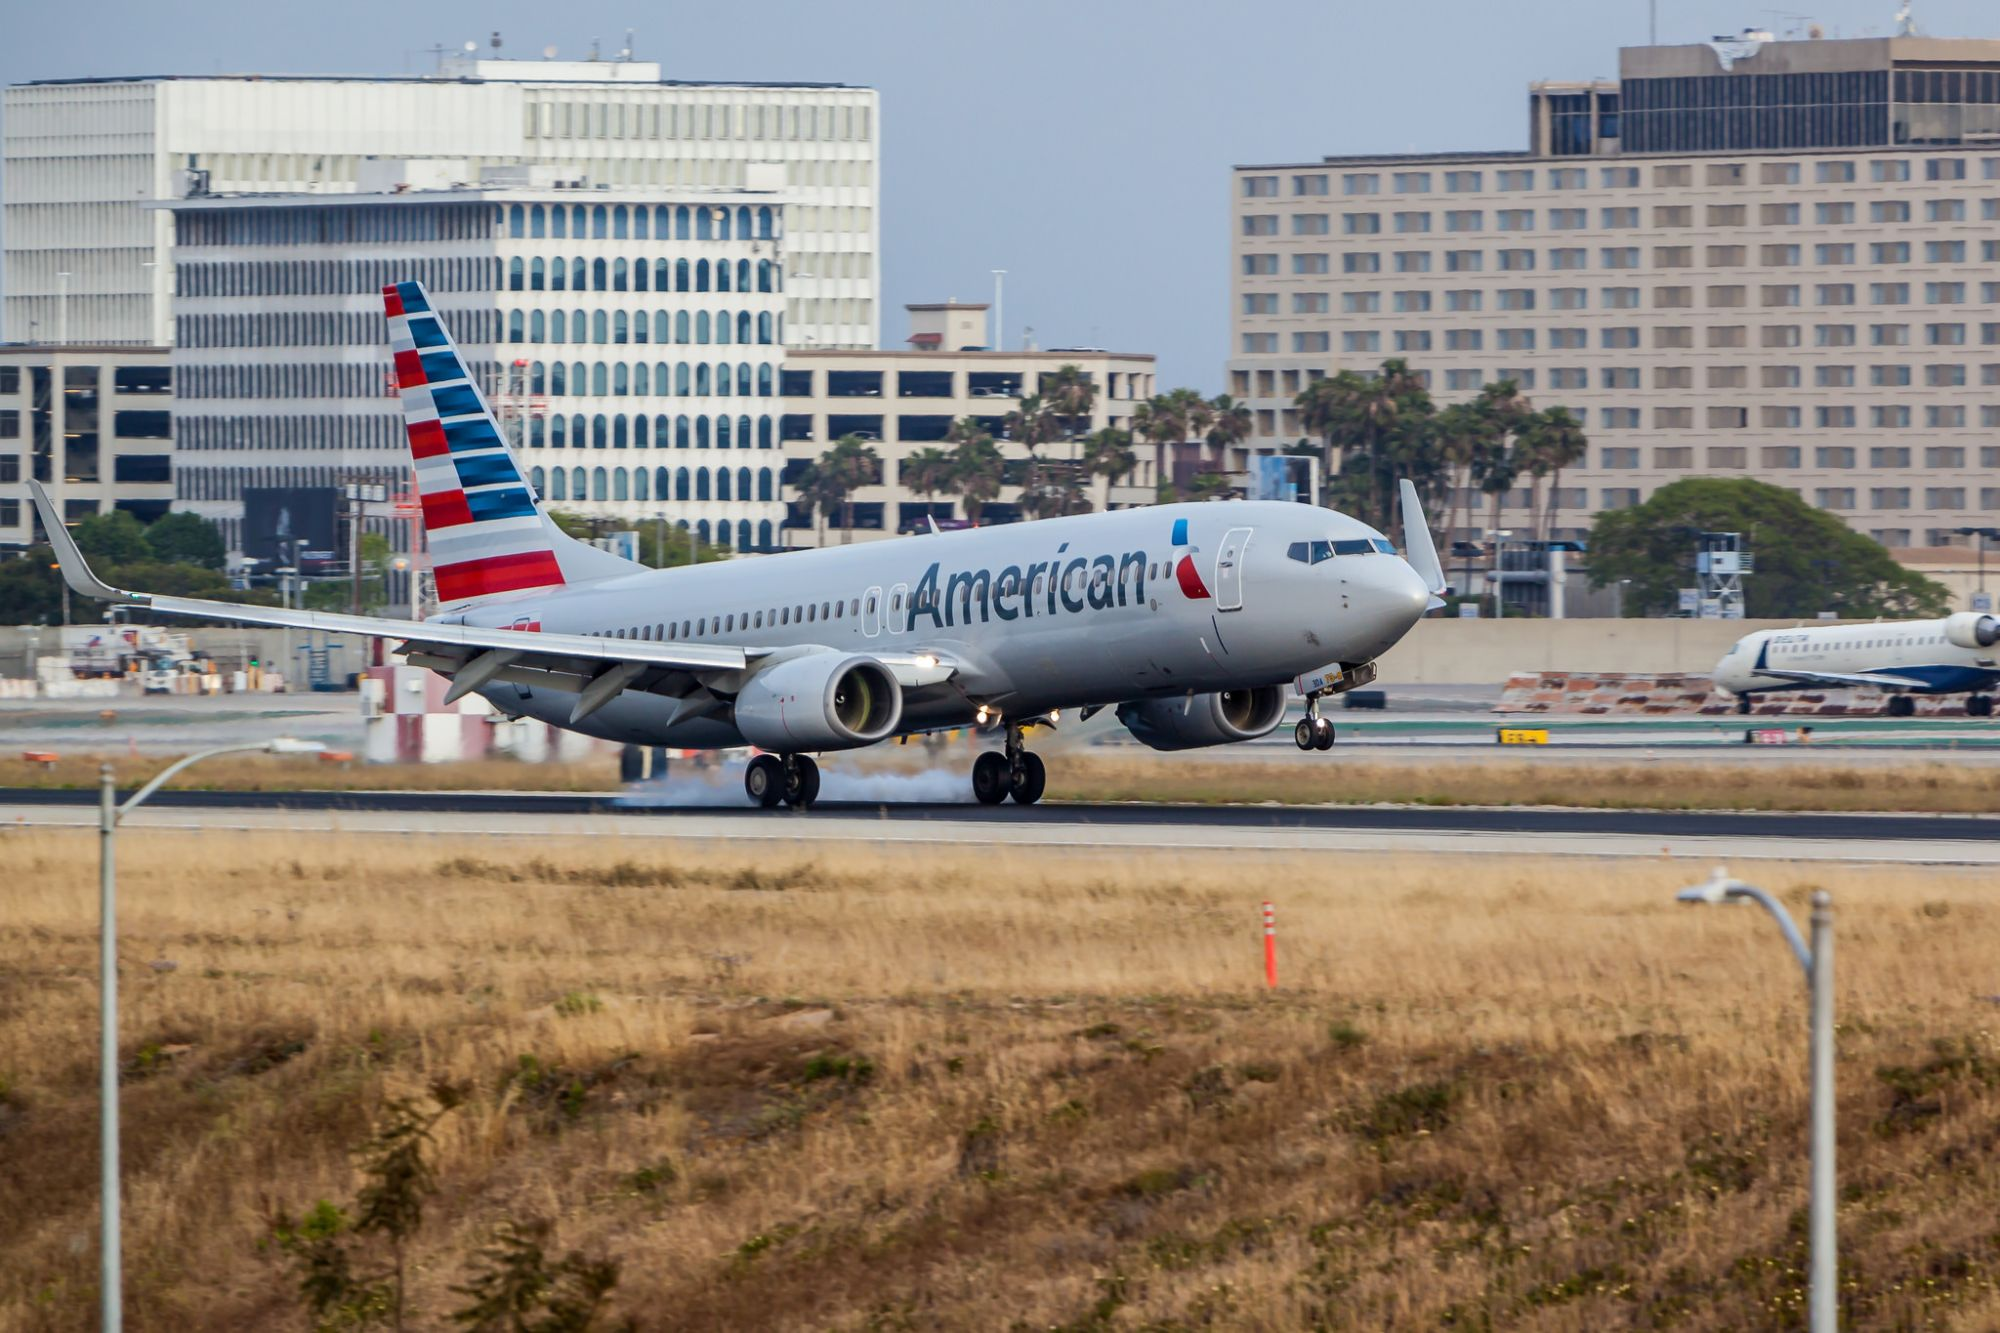 American Airlines News: New Flights between LAX and BOS, Expanded Partnership with China Southern Airlines, New Concourse at New York's LaGuardia Airport